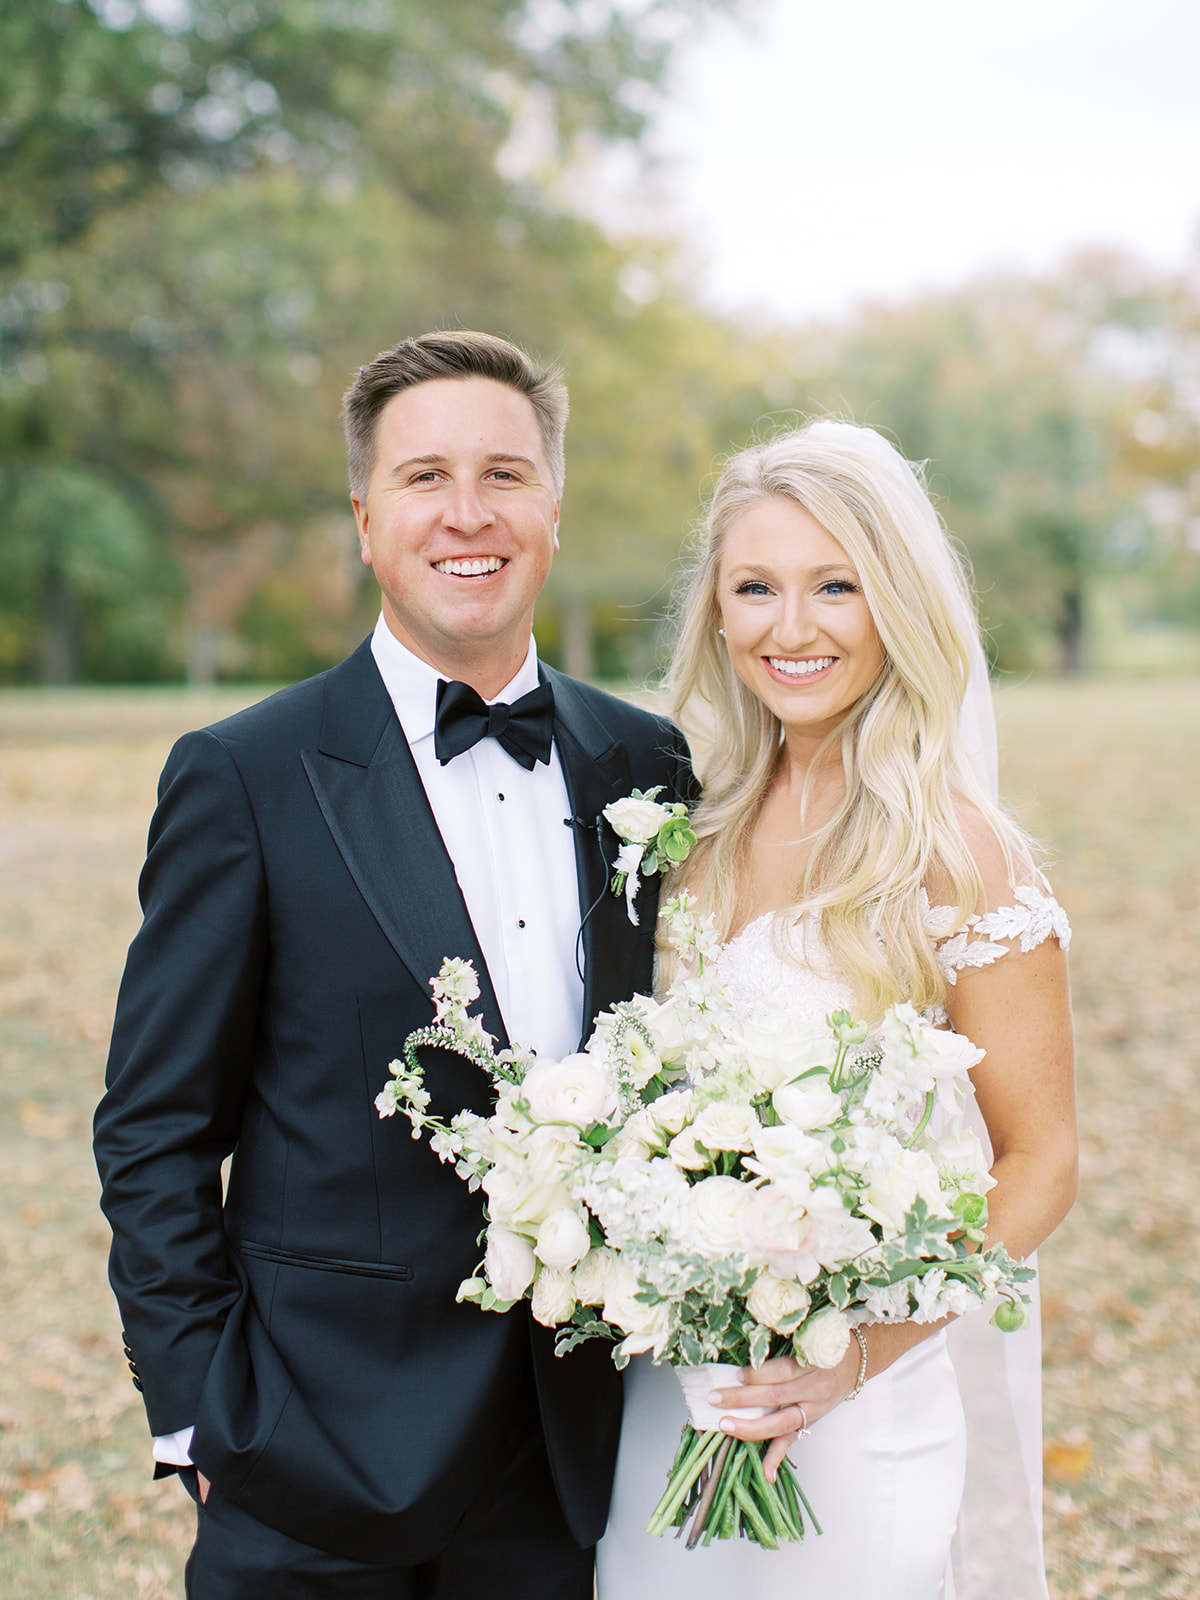 Bride and groom smiling together before Ritz Charles wedding